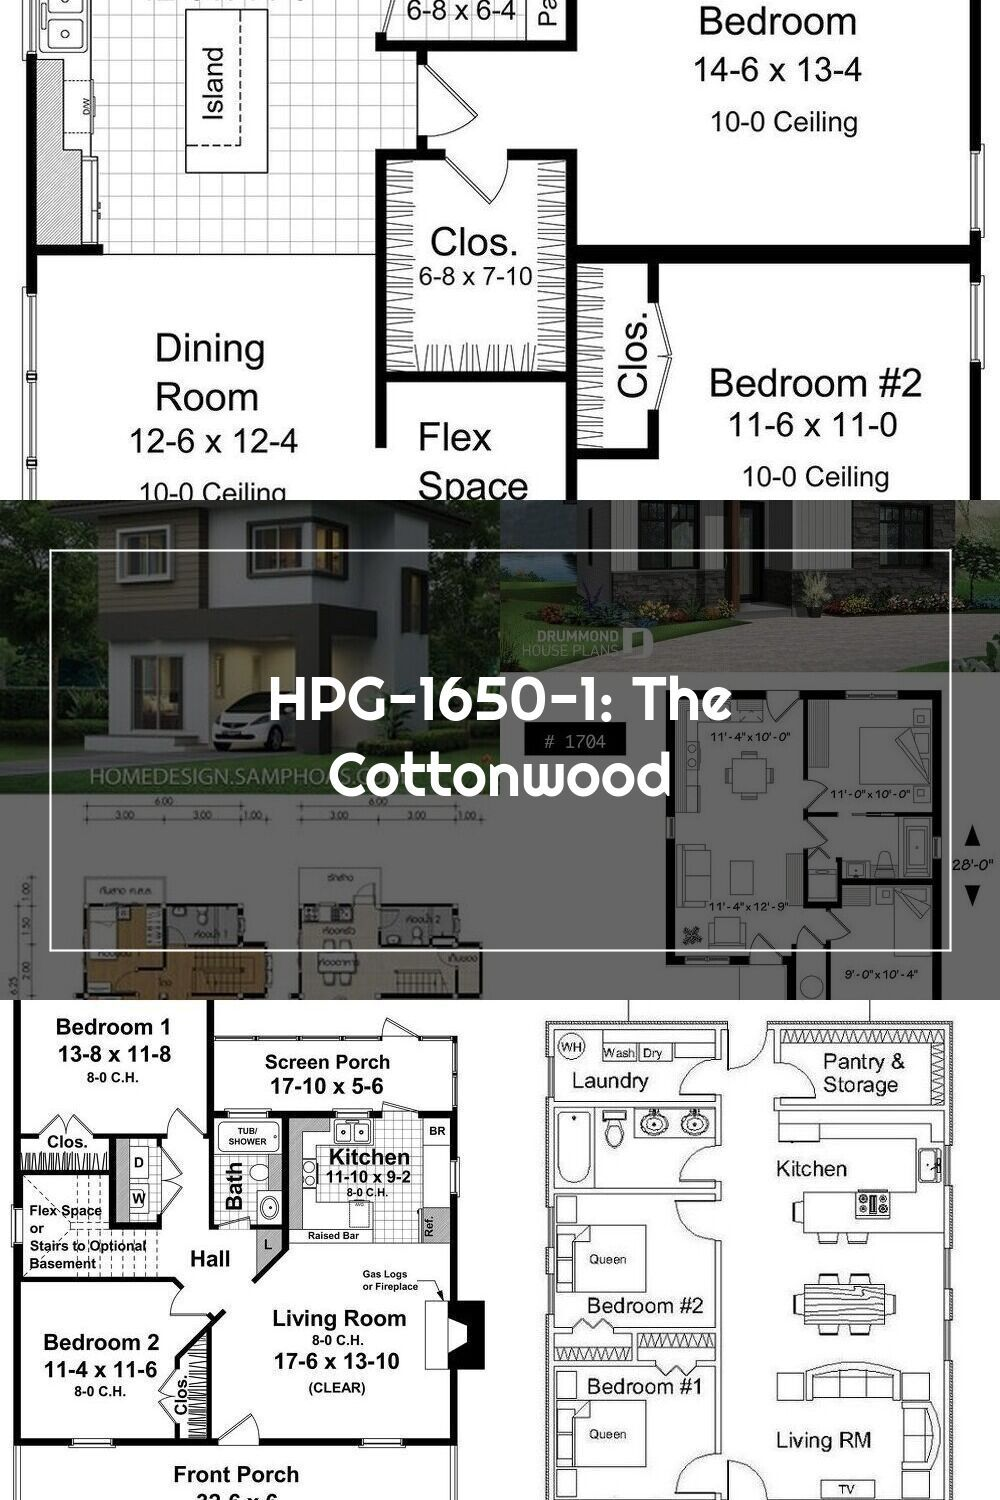 Hpg 1650 1 The Cottonwood House Plan Gallery Build Your Dream Home With Family Floor Plans V 2020 G